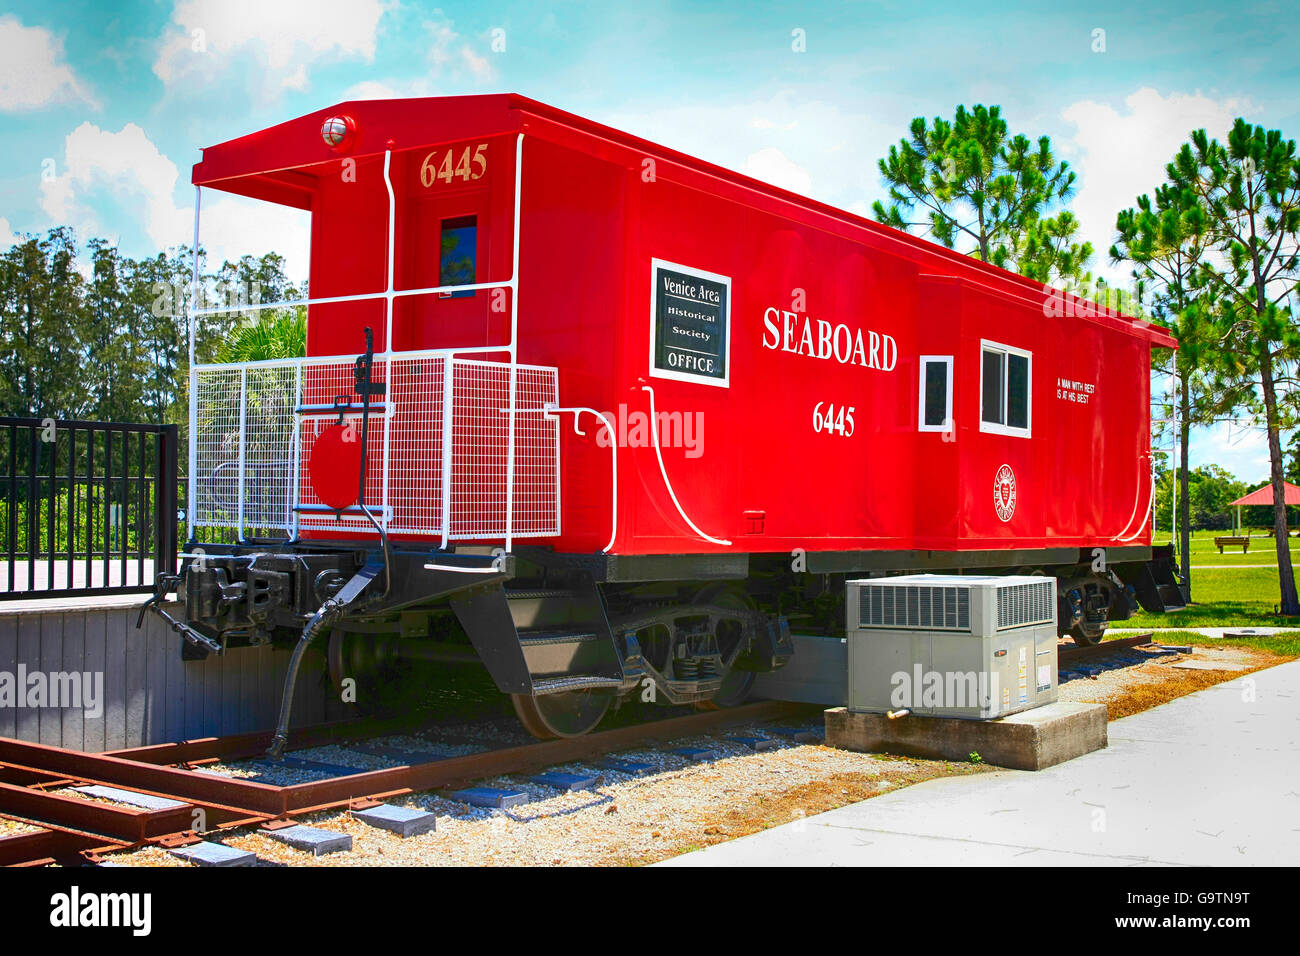 Red Seaboard Railway freight car at the Legacy Trail Train Depot in Venice FL - Stock Image